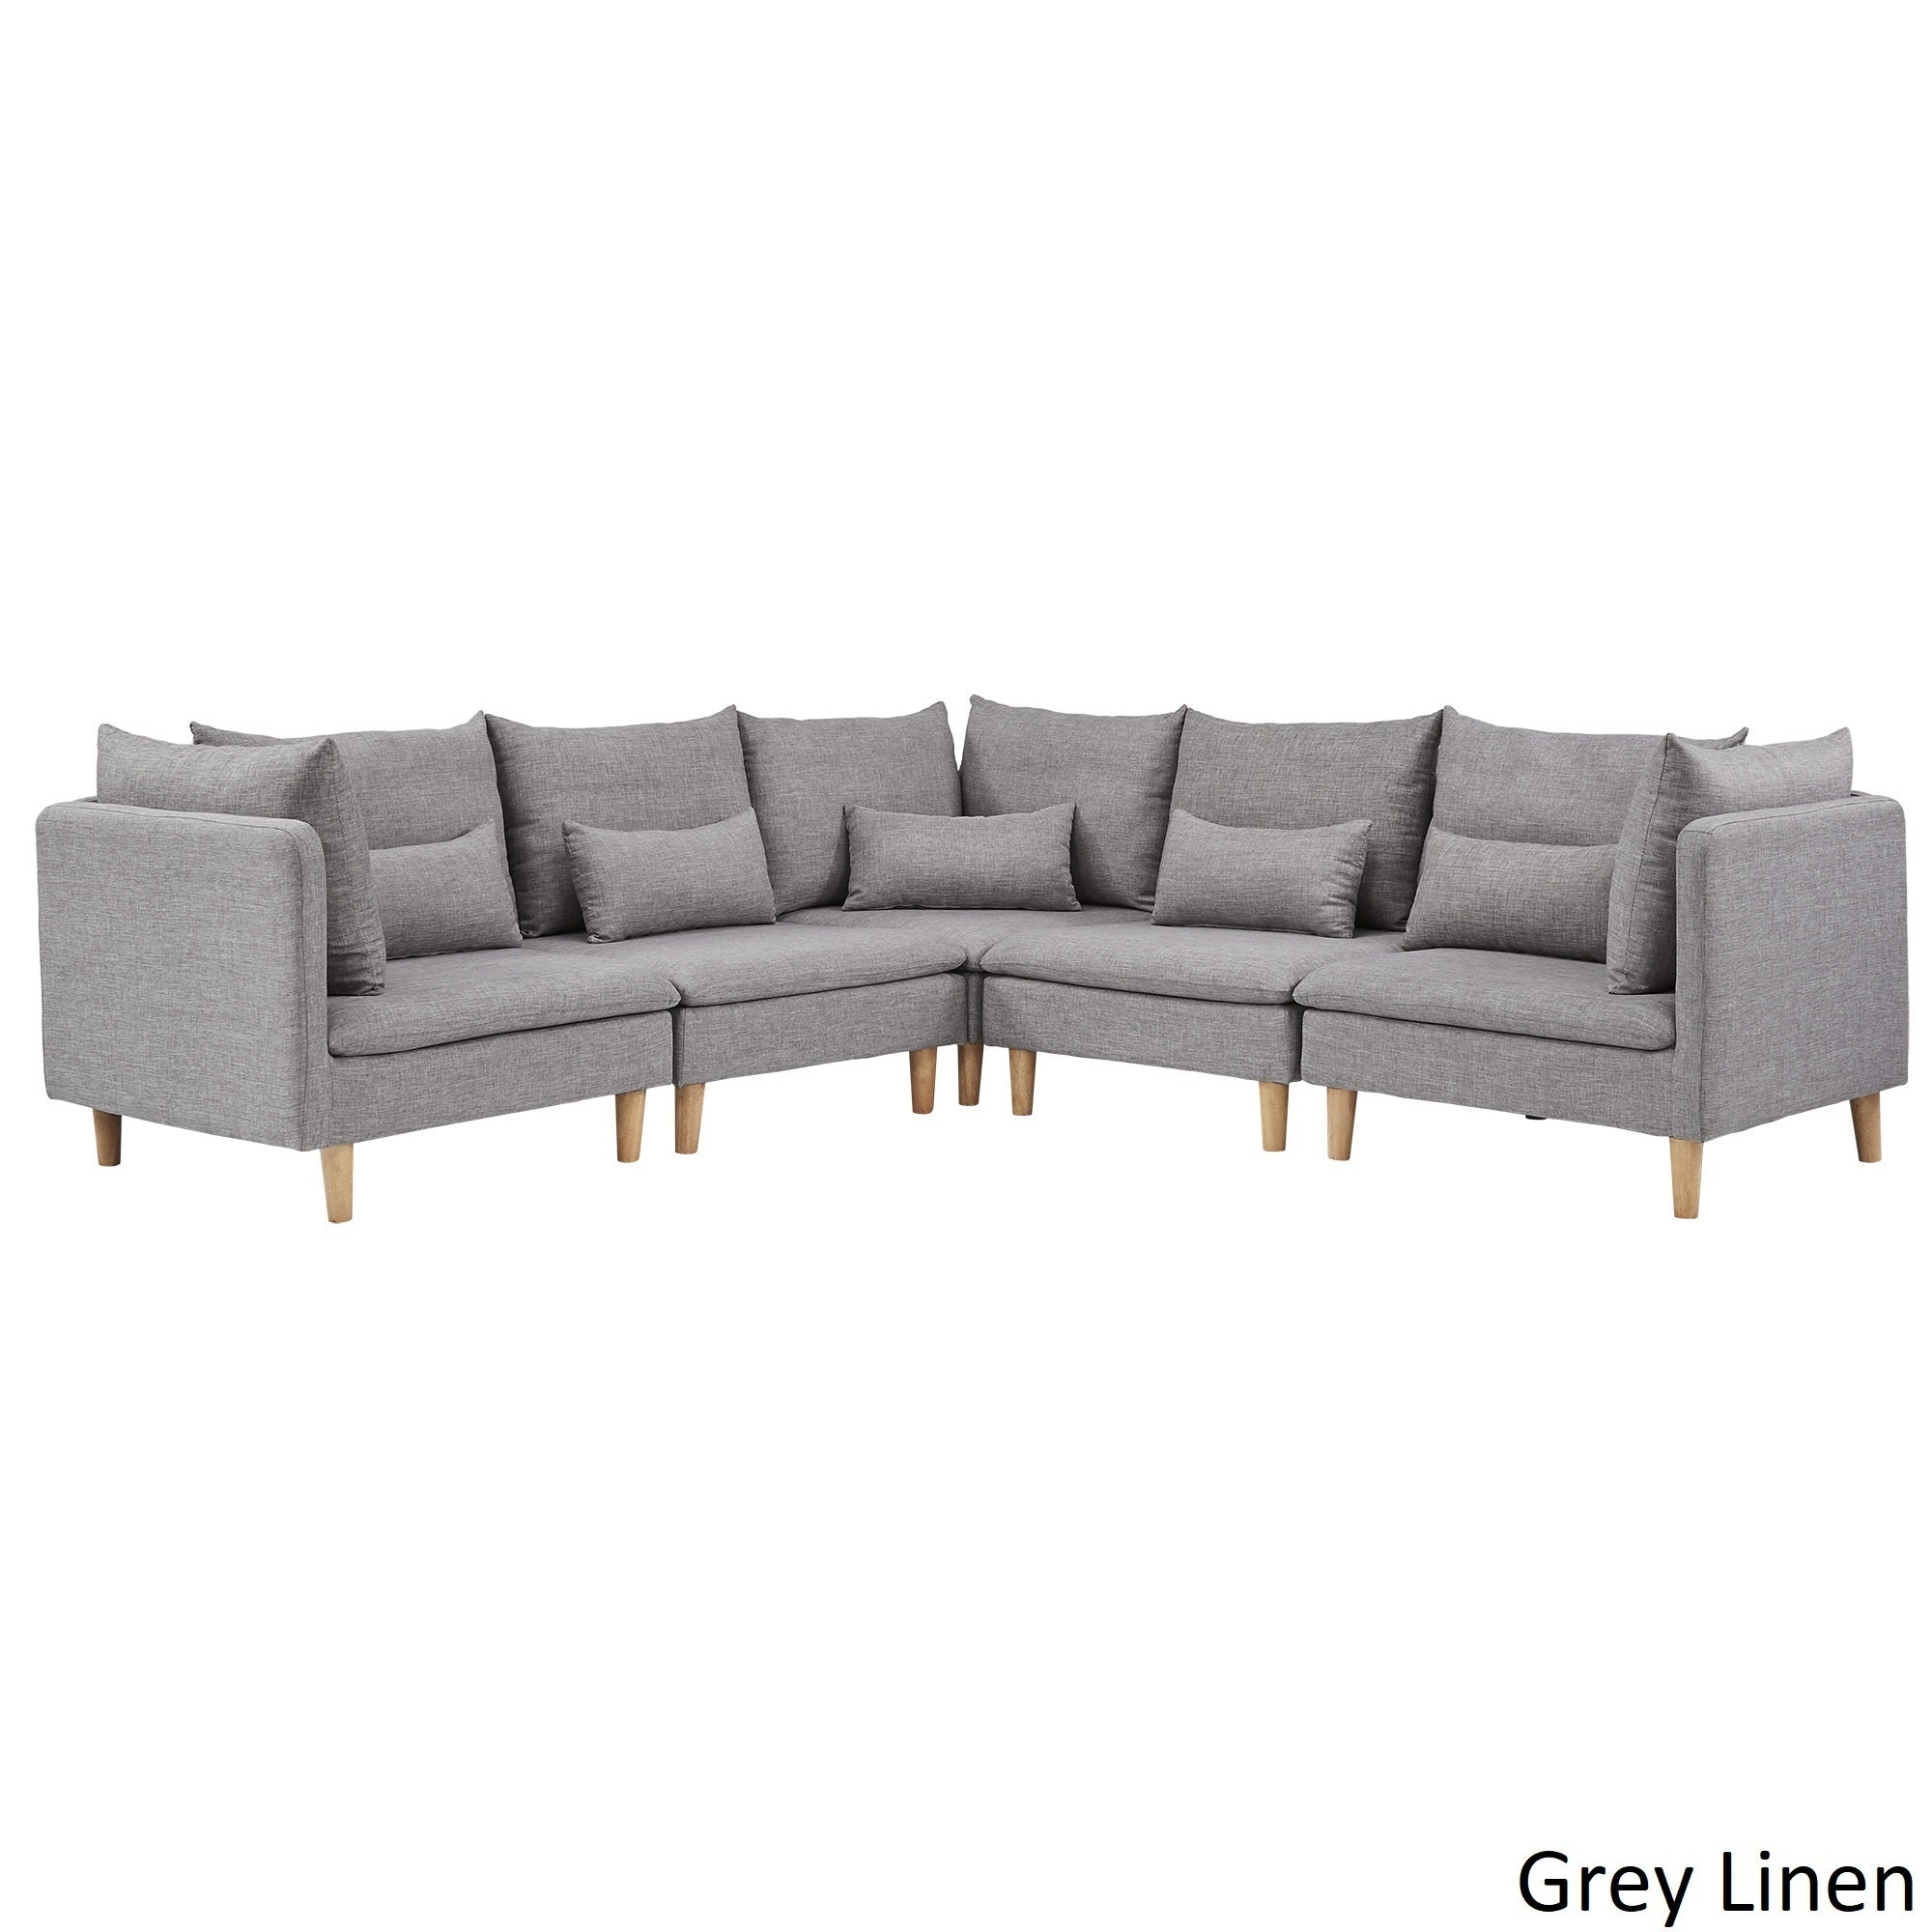 Malina Modular Fabric L-Shaped Sectional Sofa by iNSPIRE Q Modern - Free  Shipping Today - Overstock.com - 22834807